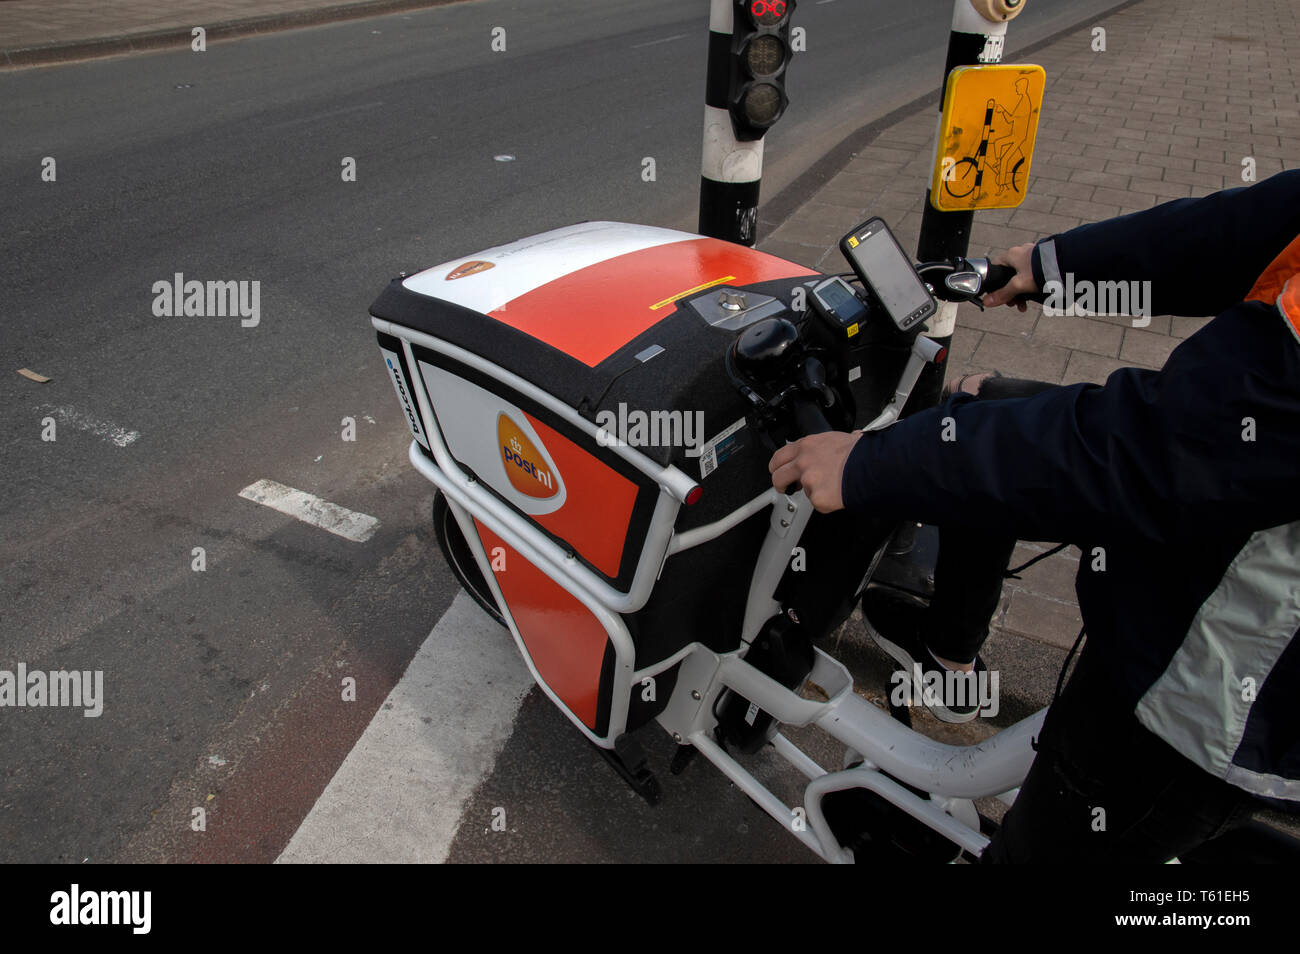 Electrical Bicycle From Post.nl At Amsterdam The Netherlands 2019 - Stock Image